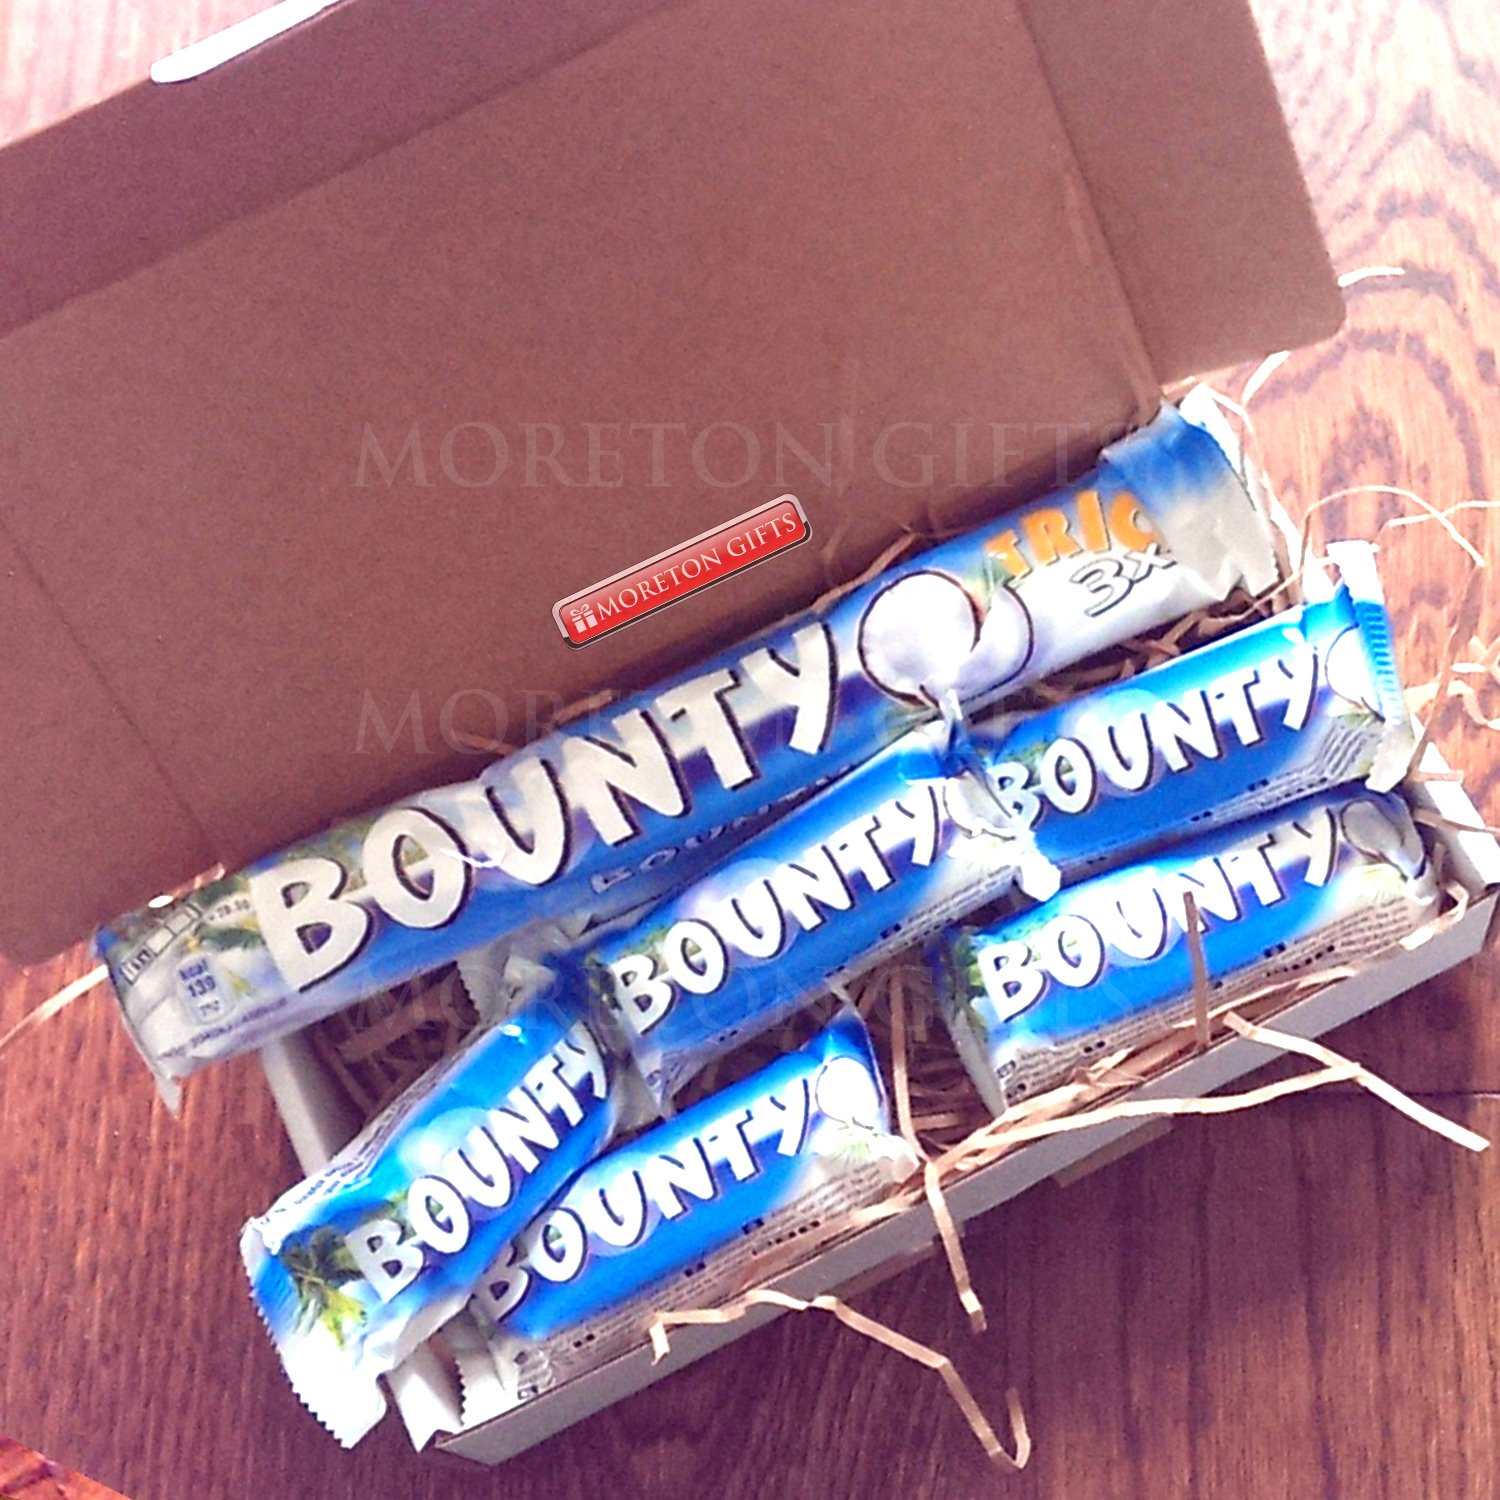 Bounty Lovers Treat Box - Lovely Coconut Coated with Yummy Chocolate - By Moreton Gifts: Amazon.co.uk: Grocery